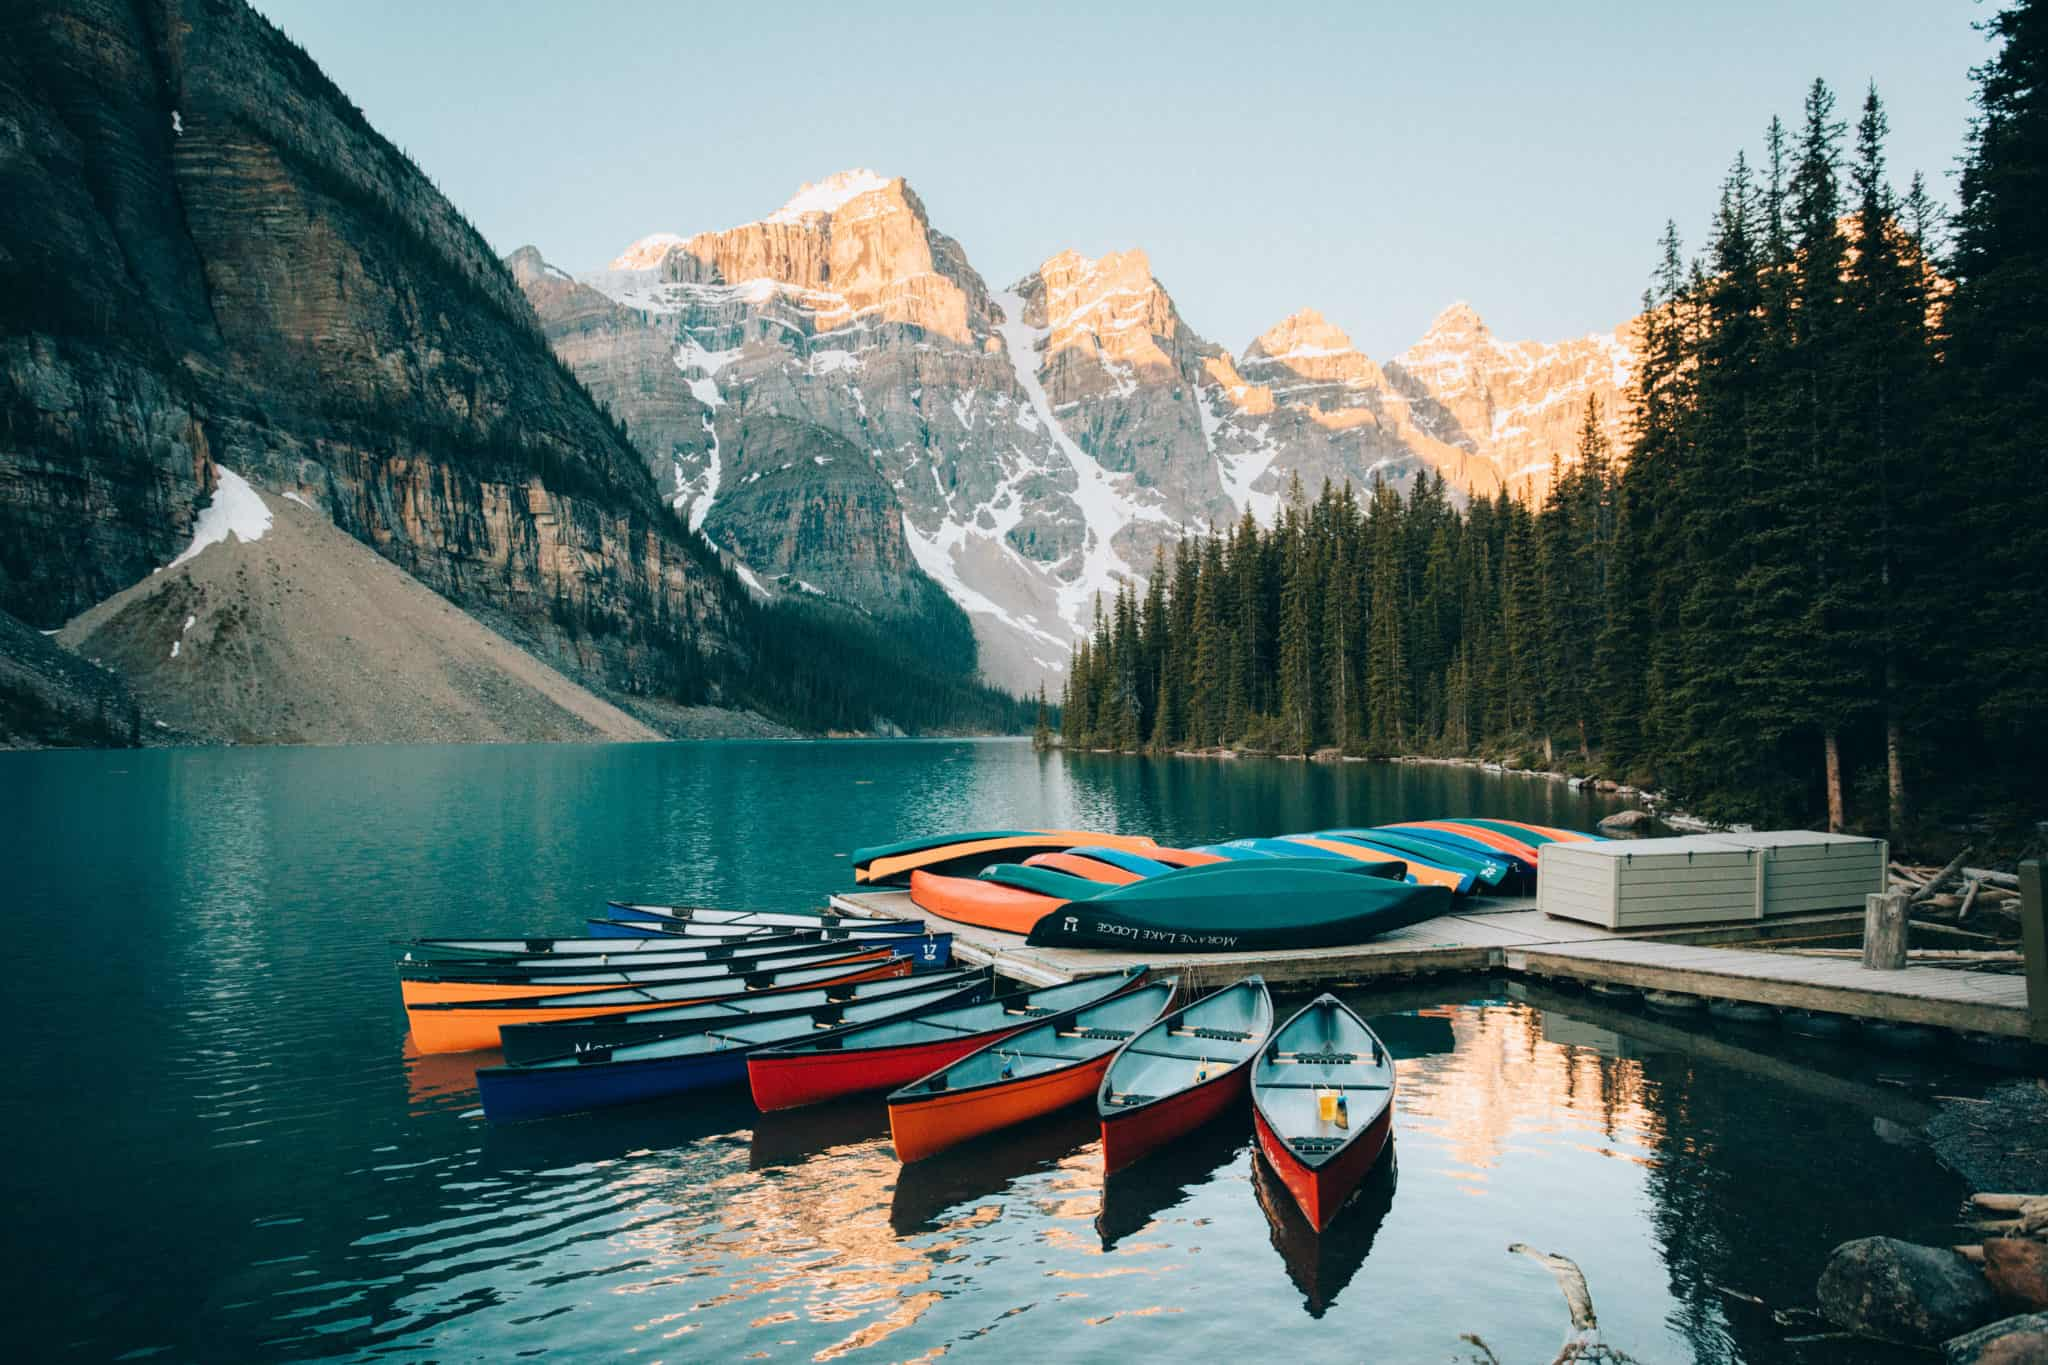 The Top 10 Instagram Worthy Photo Spots In Banff And Exactly